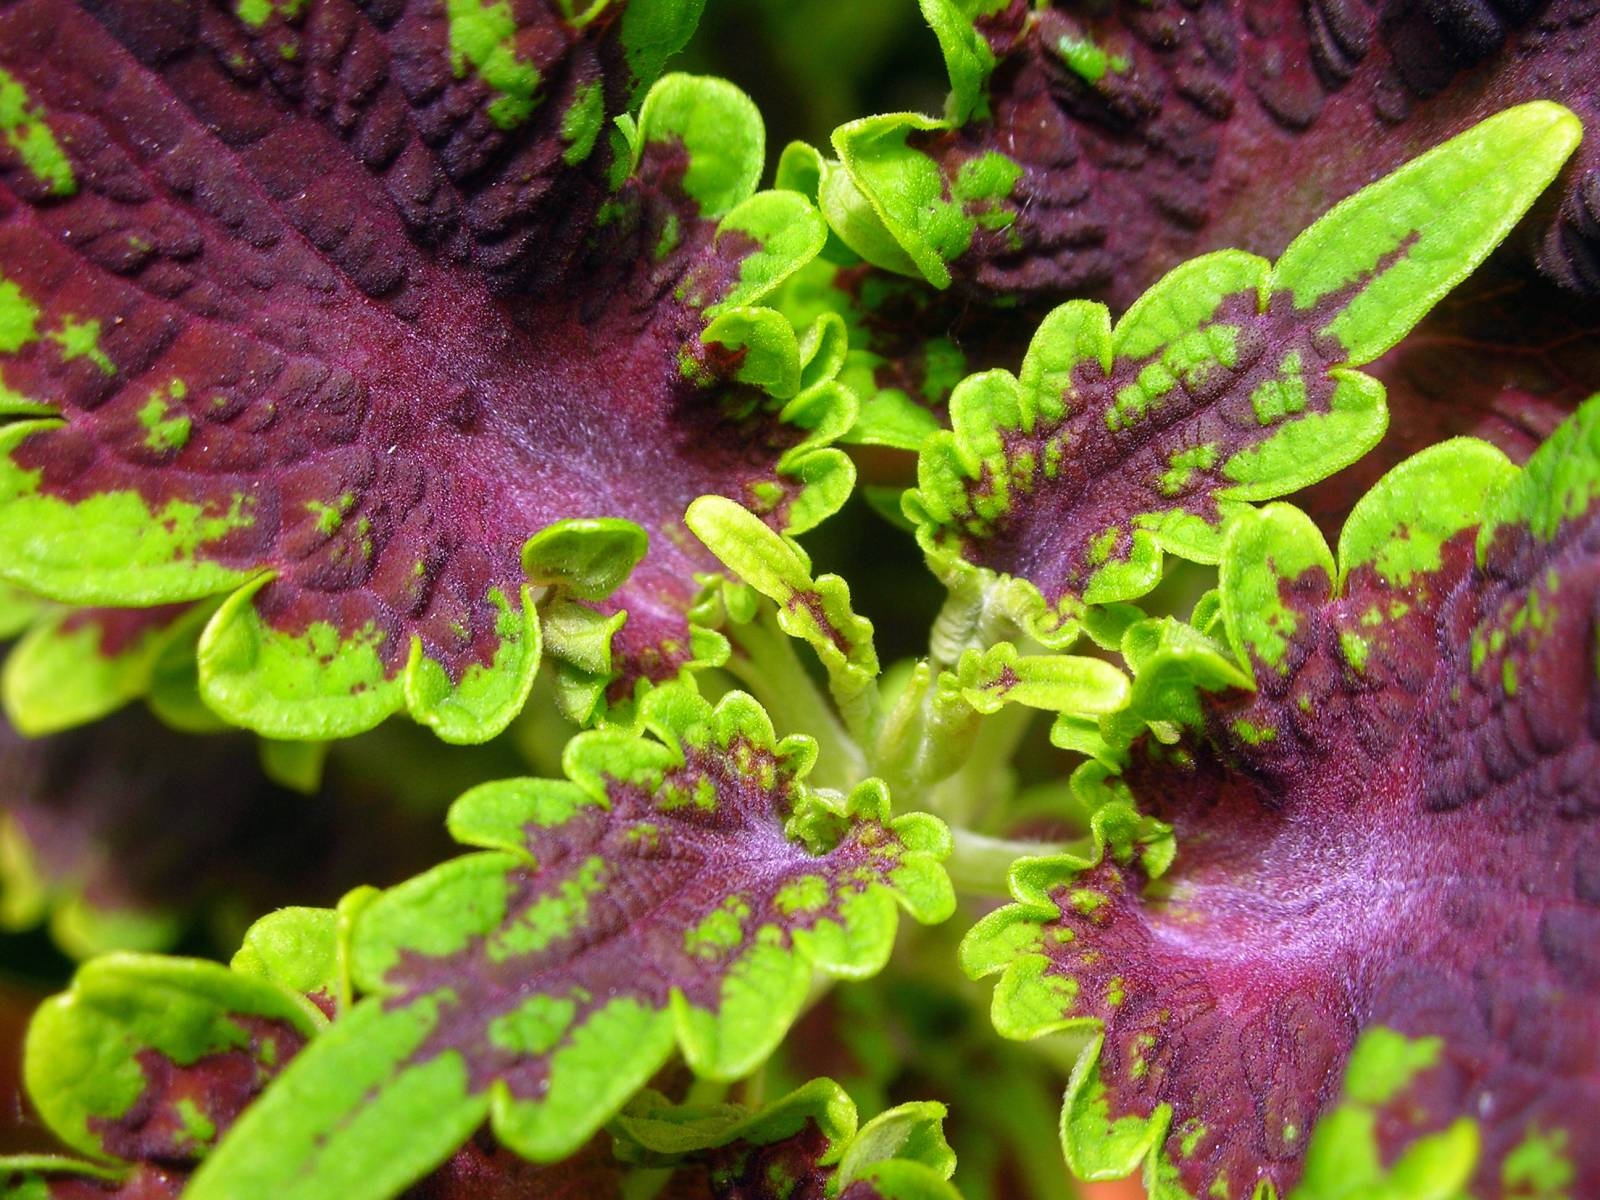 Coleus Plant - Source: FreeImages.com/V Fouche